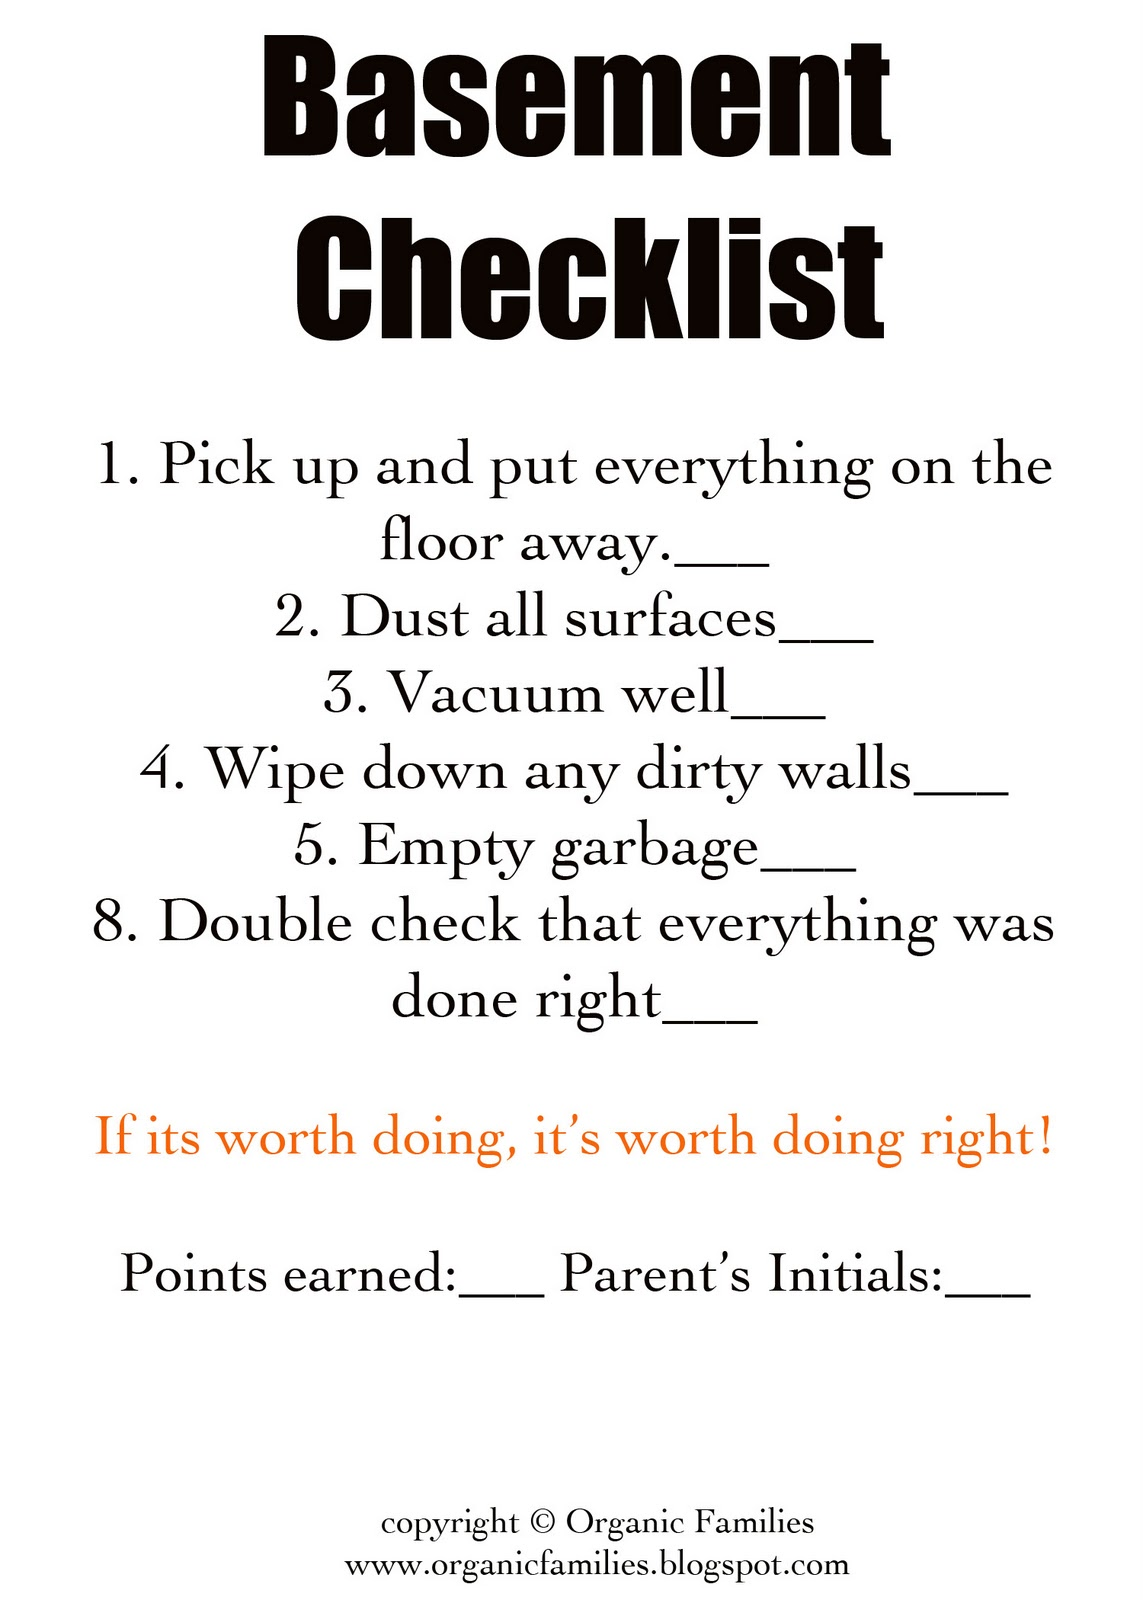 Kids Chores List Checklist